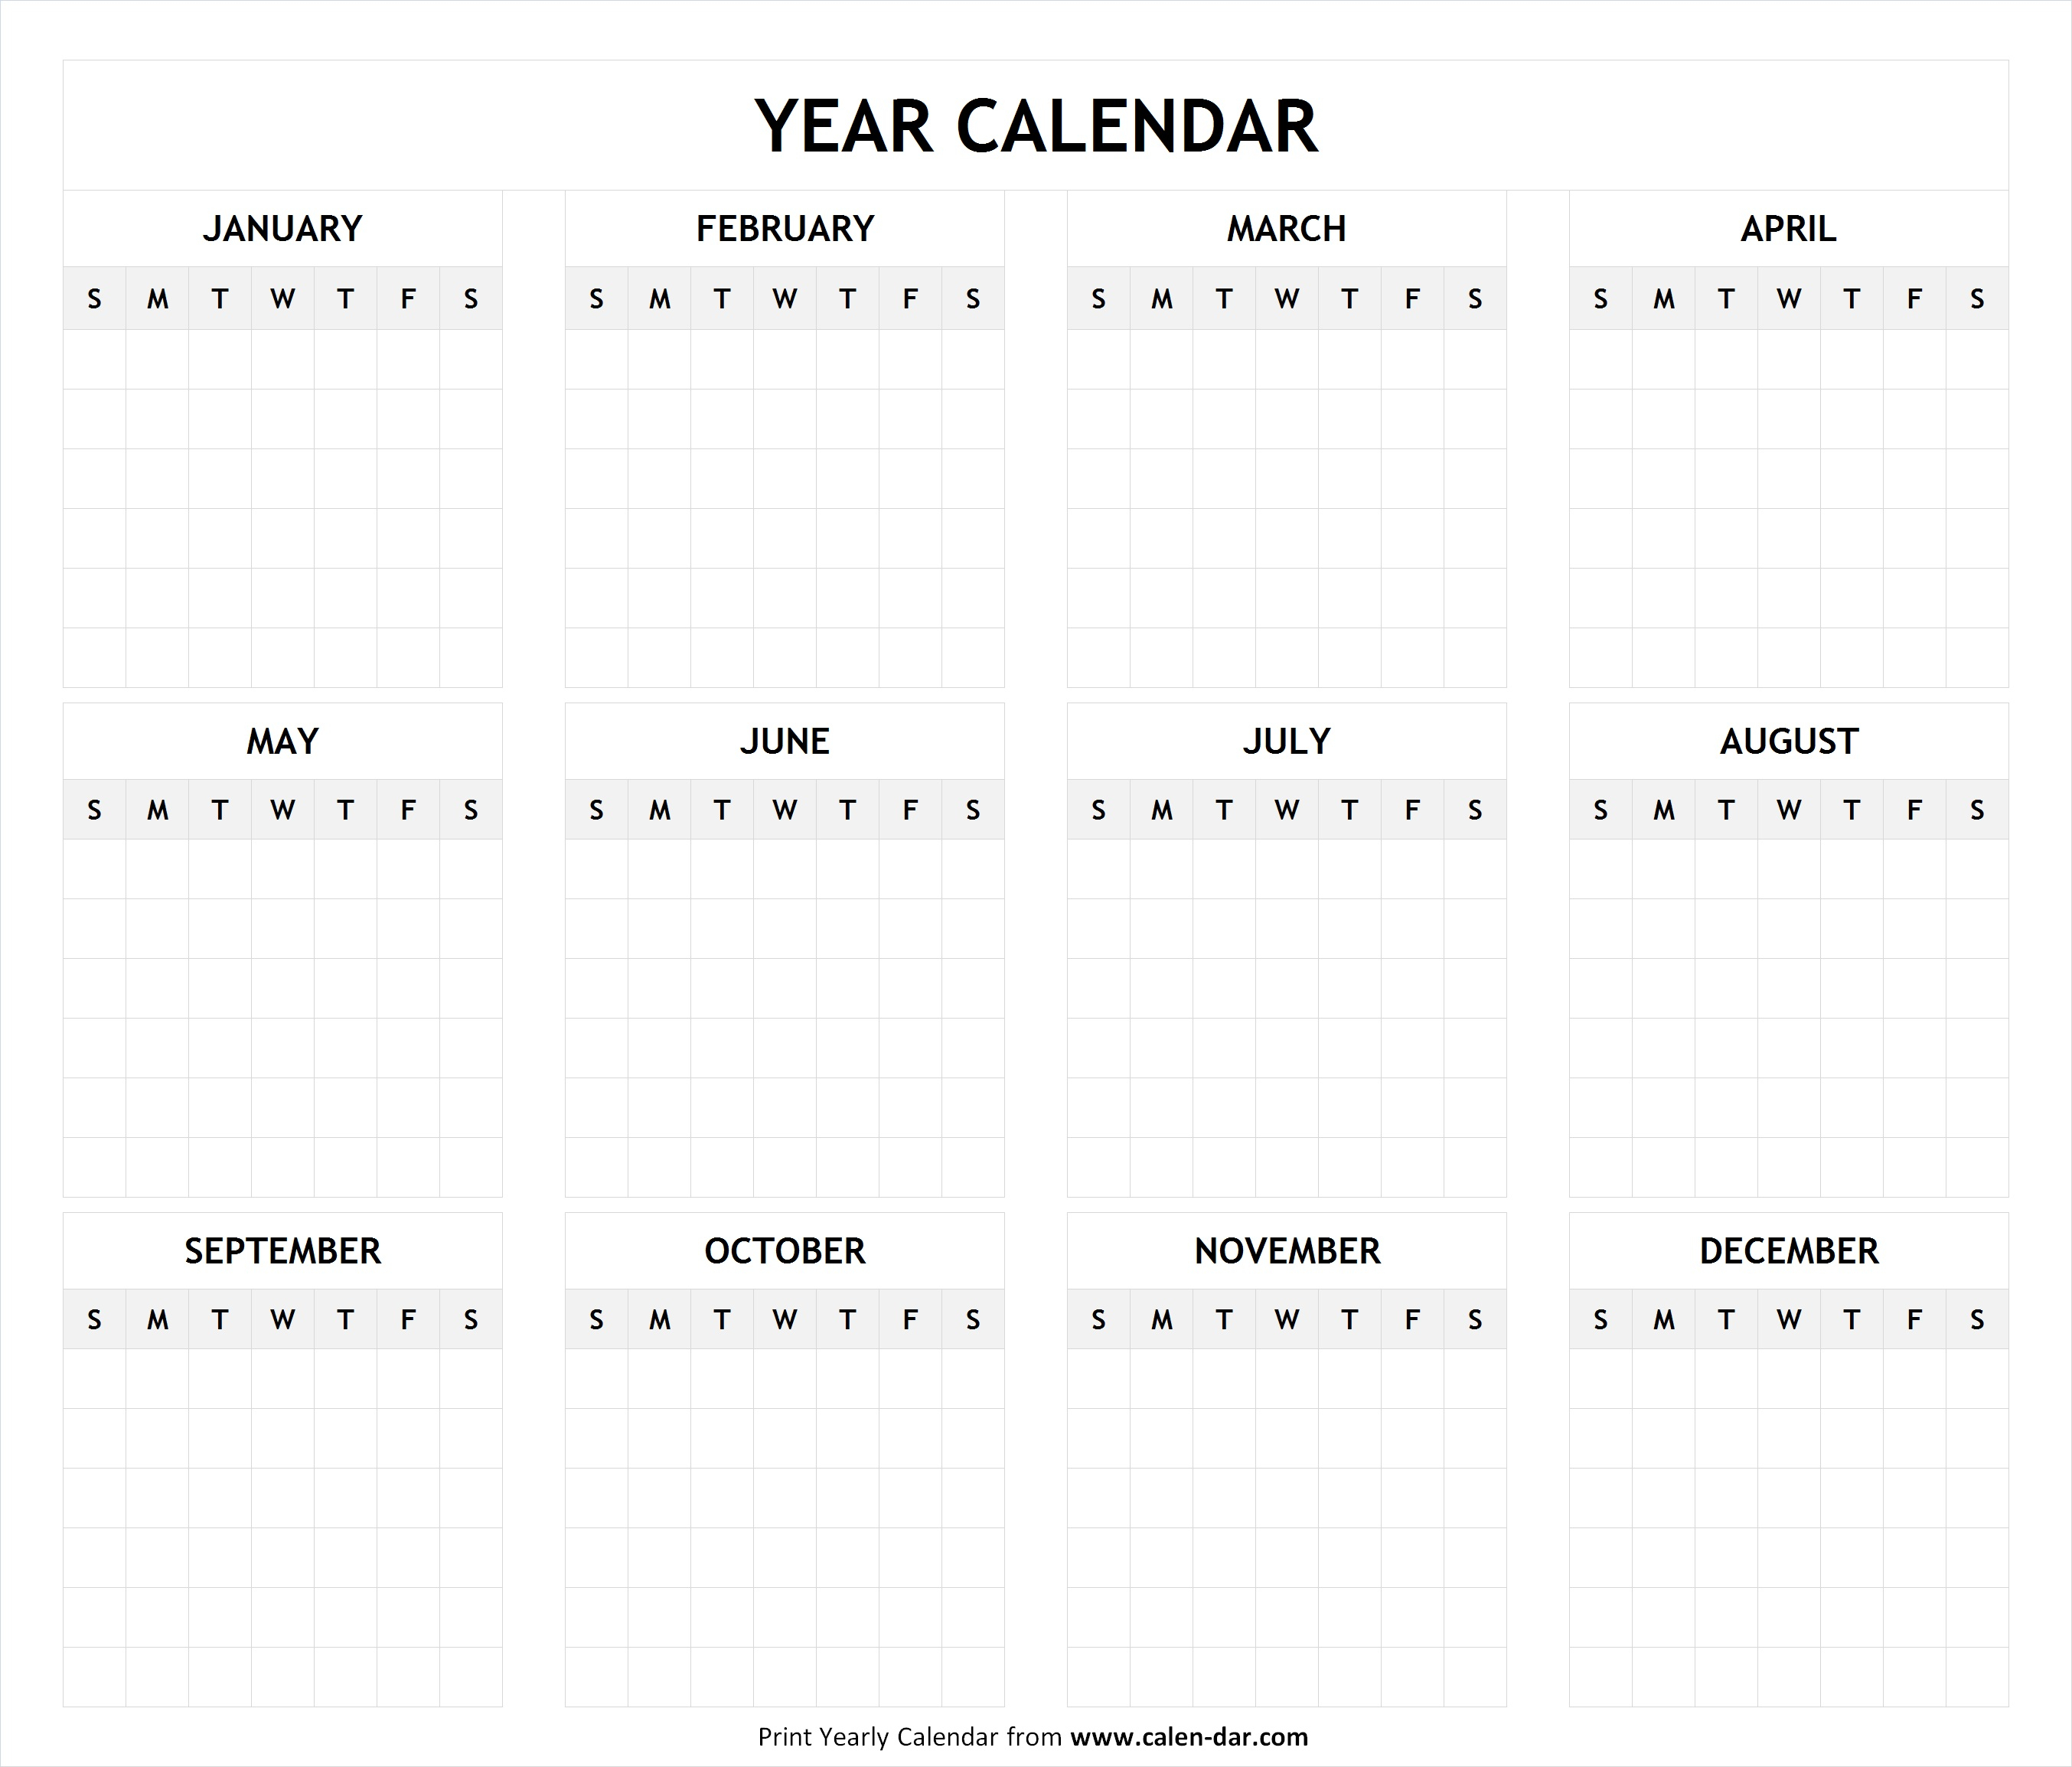 Printable Blank Year Calendar Templatemonth | Editable Calendar pertaining to Blank Printable Calendars Yearly